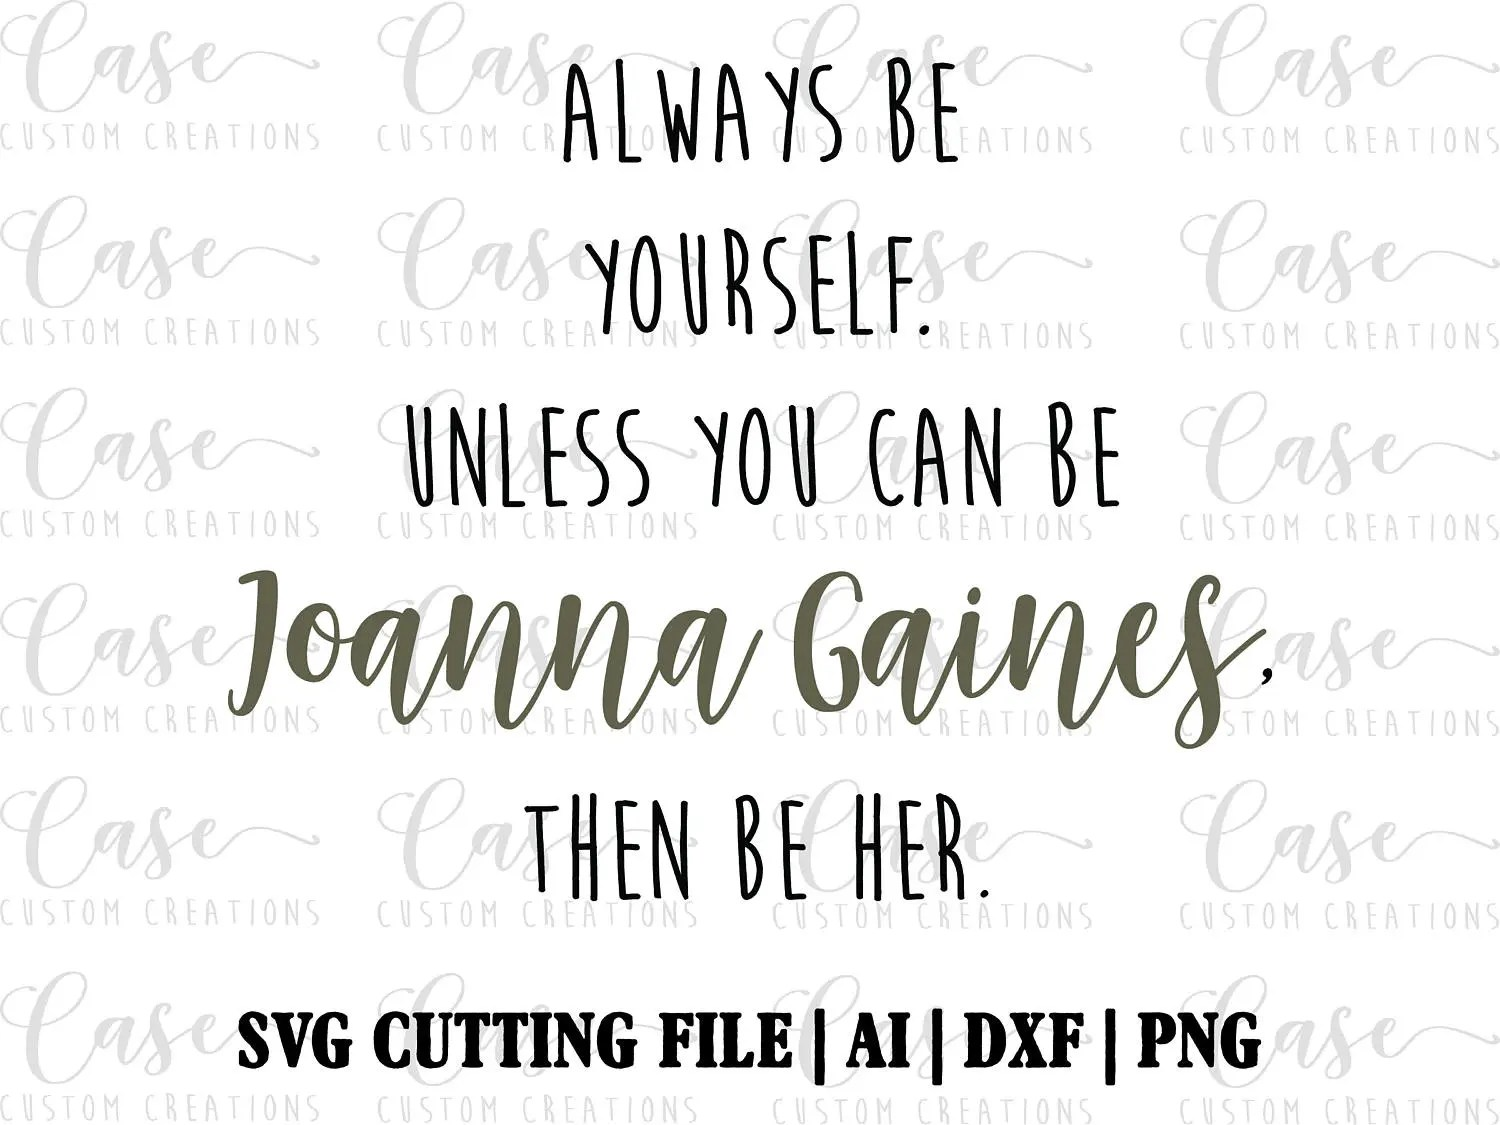 Always be Yourself Joanna Gaines SVG Cutting File Ai DXF